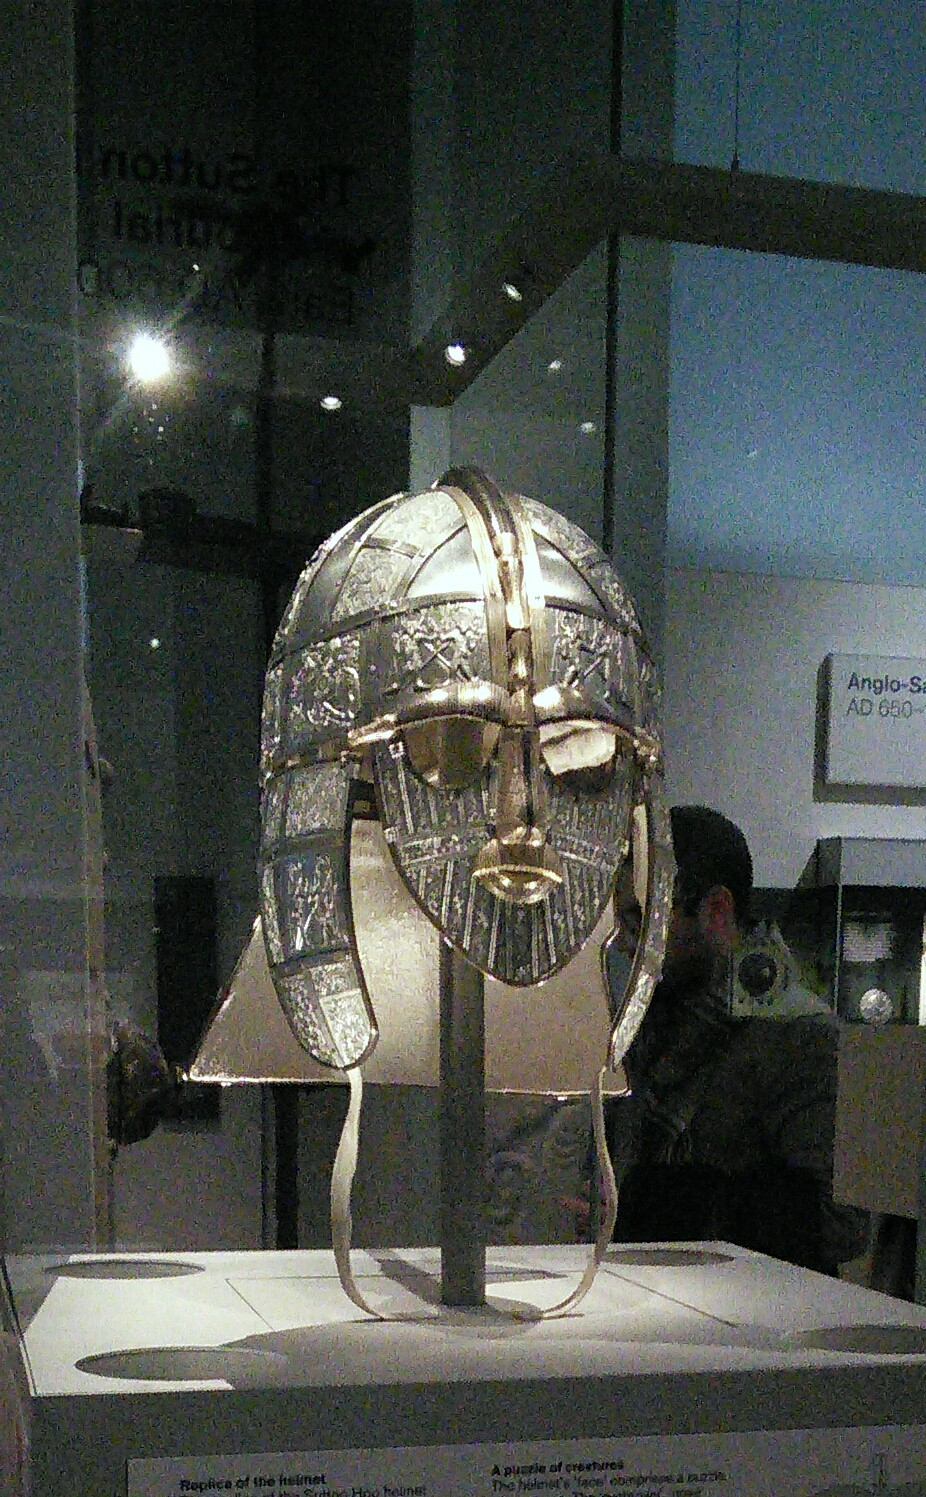 Replica of rare Saxon helmet from the Sutton Hoo burial